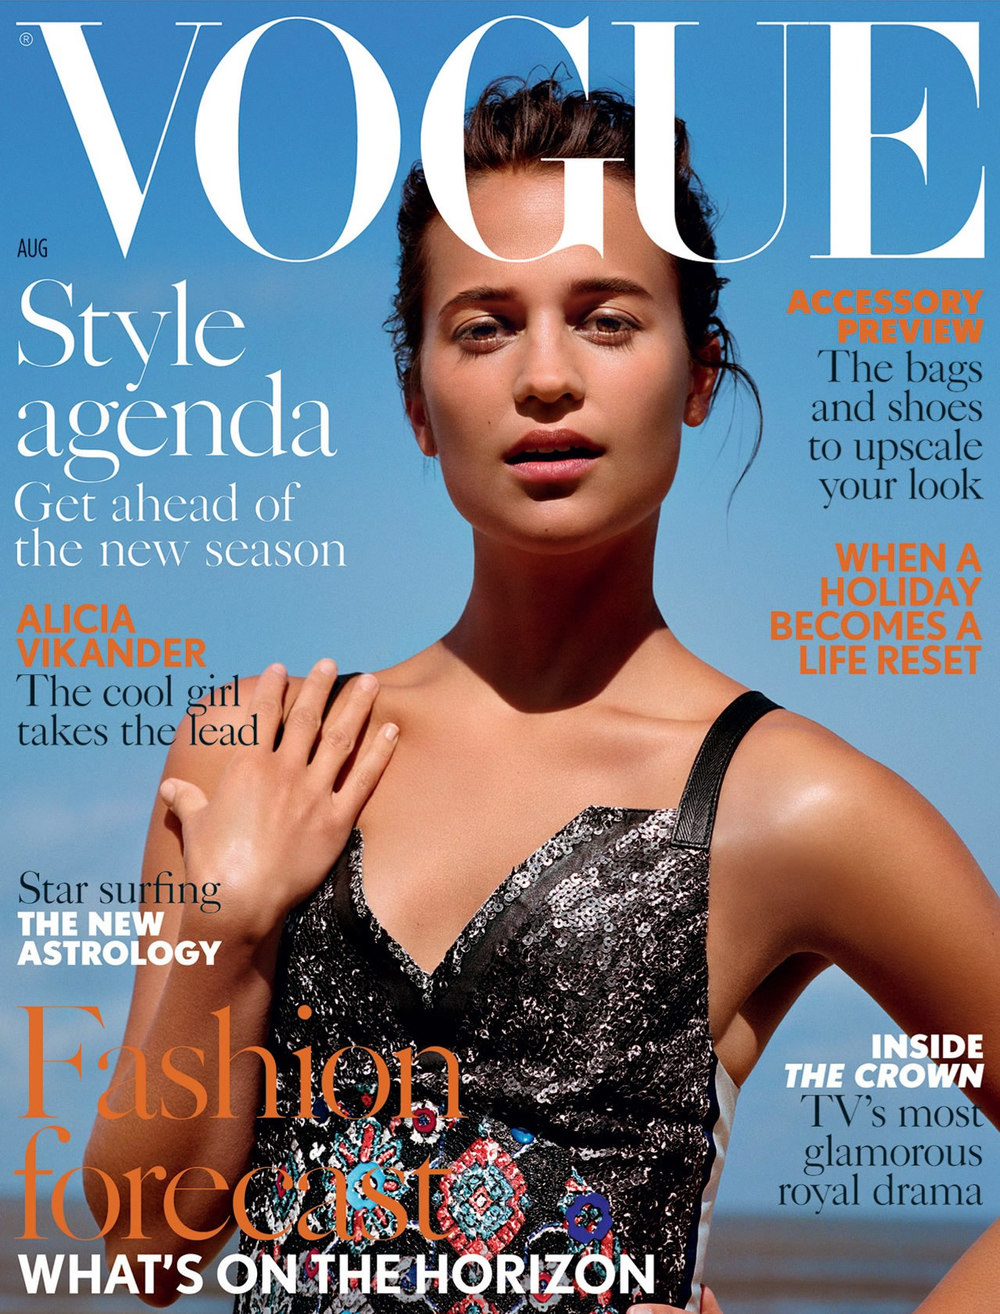 alicia-vikander-by-alasdair-mclellan-for-vogue-uk-august-2016-0.jpg